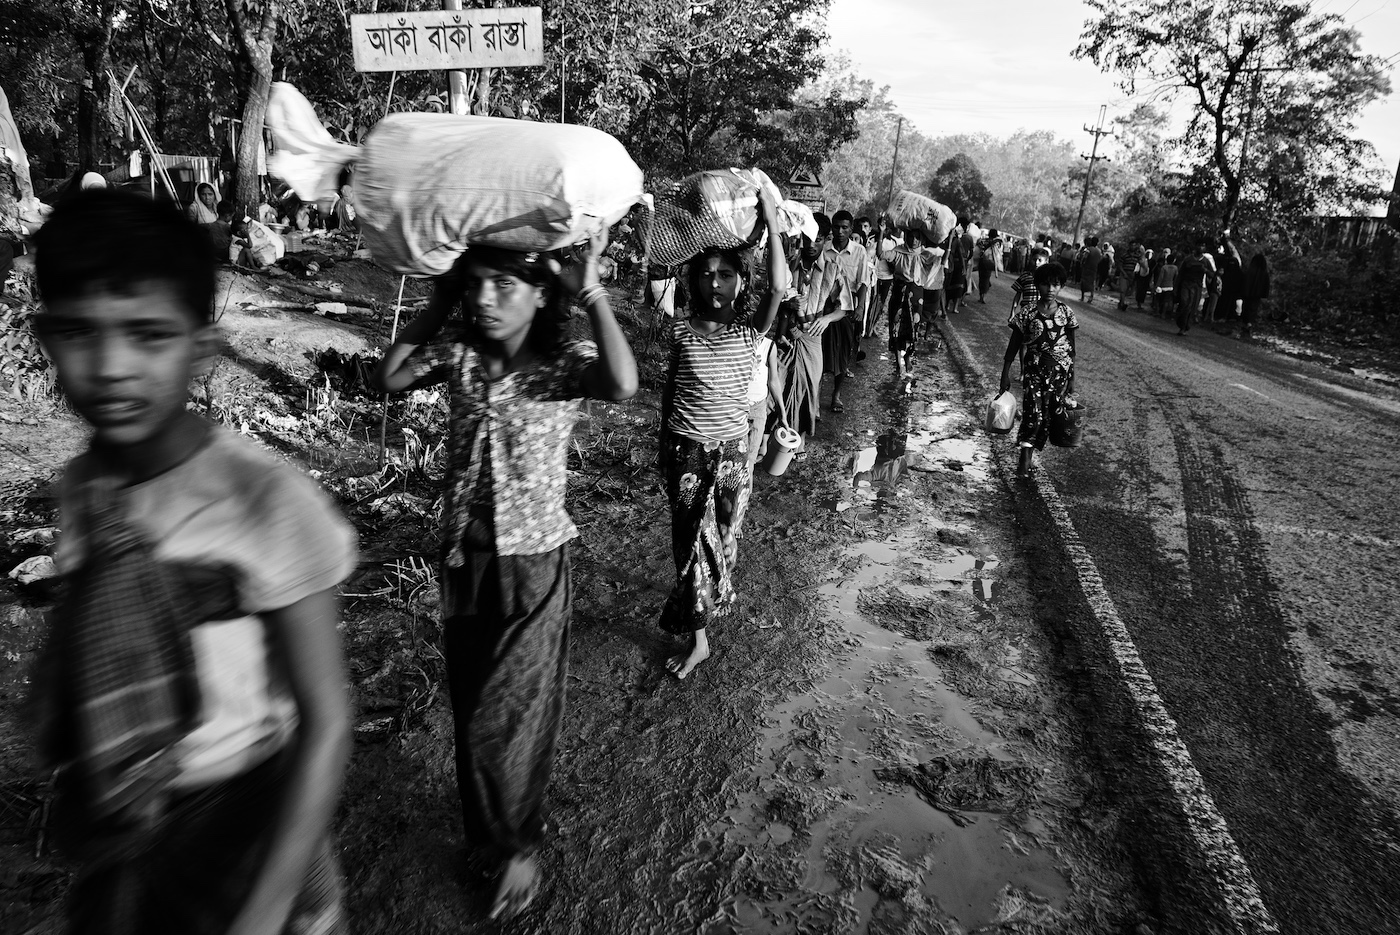 Hundreds of thousands of Rohingya have flooded into southern Bangladesh. The north-south highway between Cox's Bazar and Teknaf is a steady flow of Rohingya refugees, September 2017.